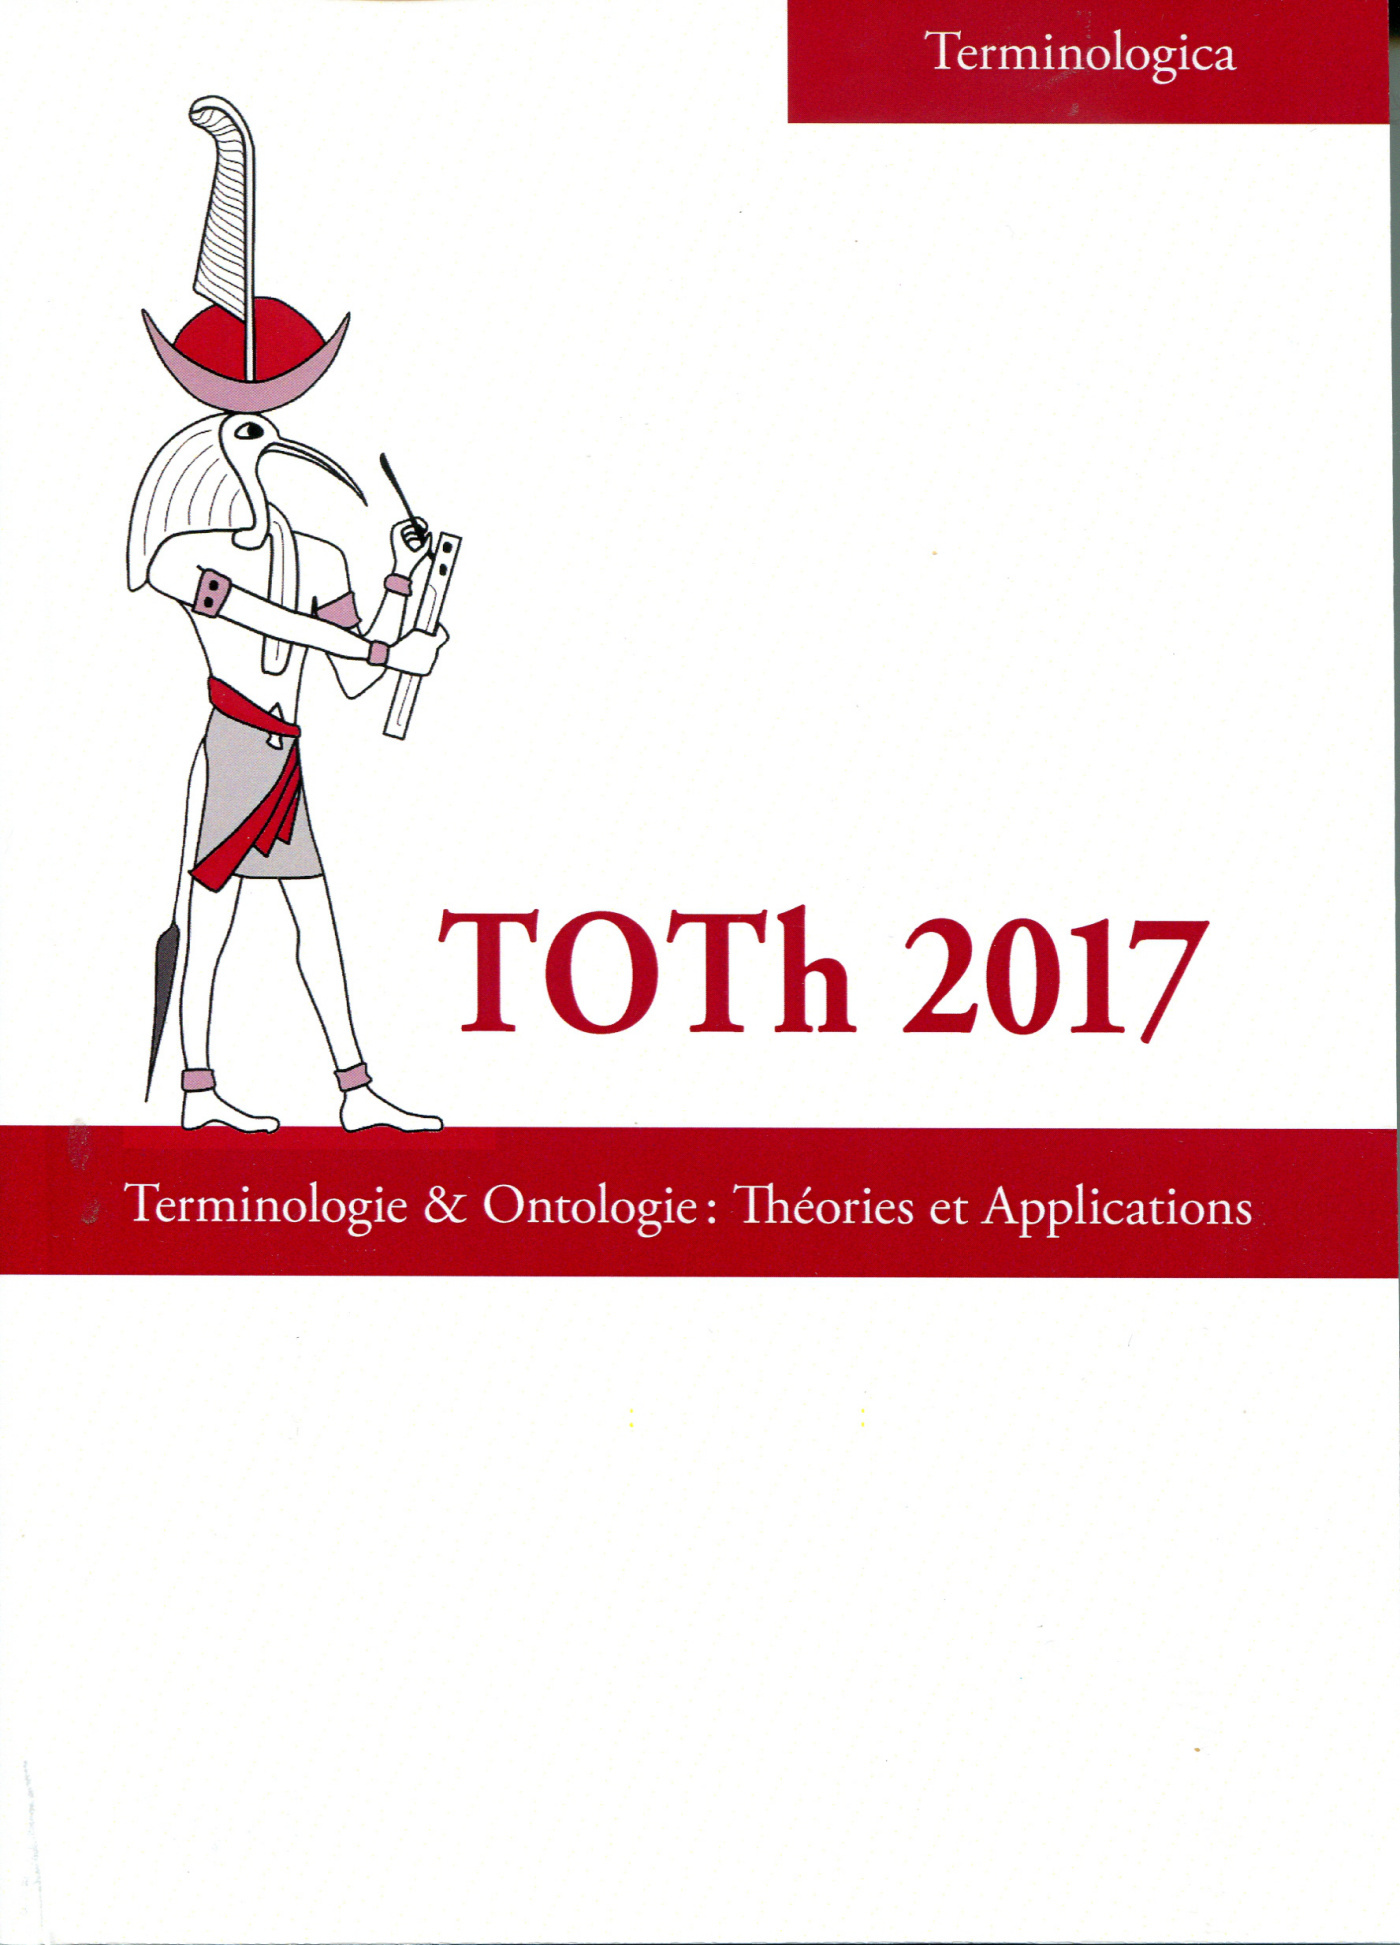 TOTH 2017. TERMINOLOGIE & ONTOLOGIE : THEORIES ET APPLICATIONS